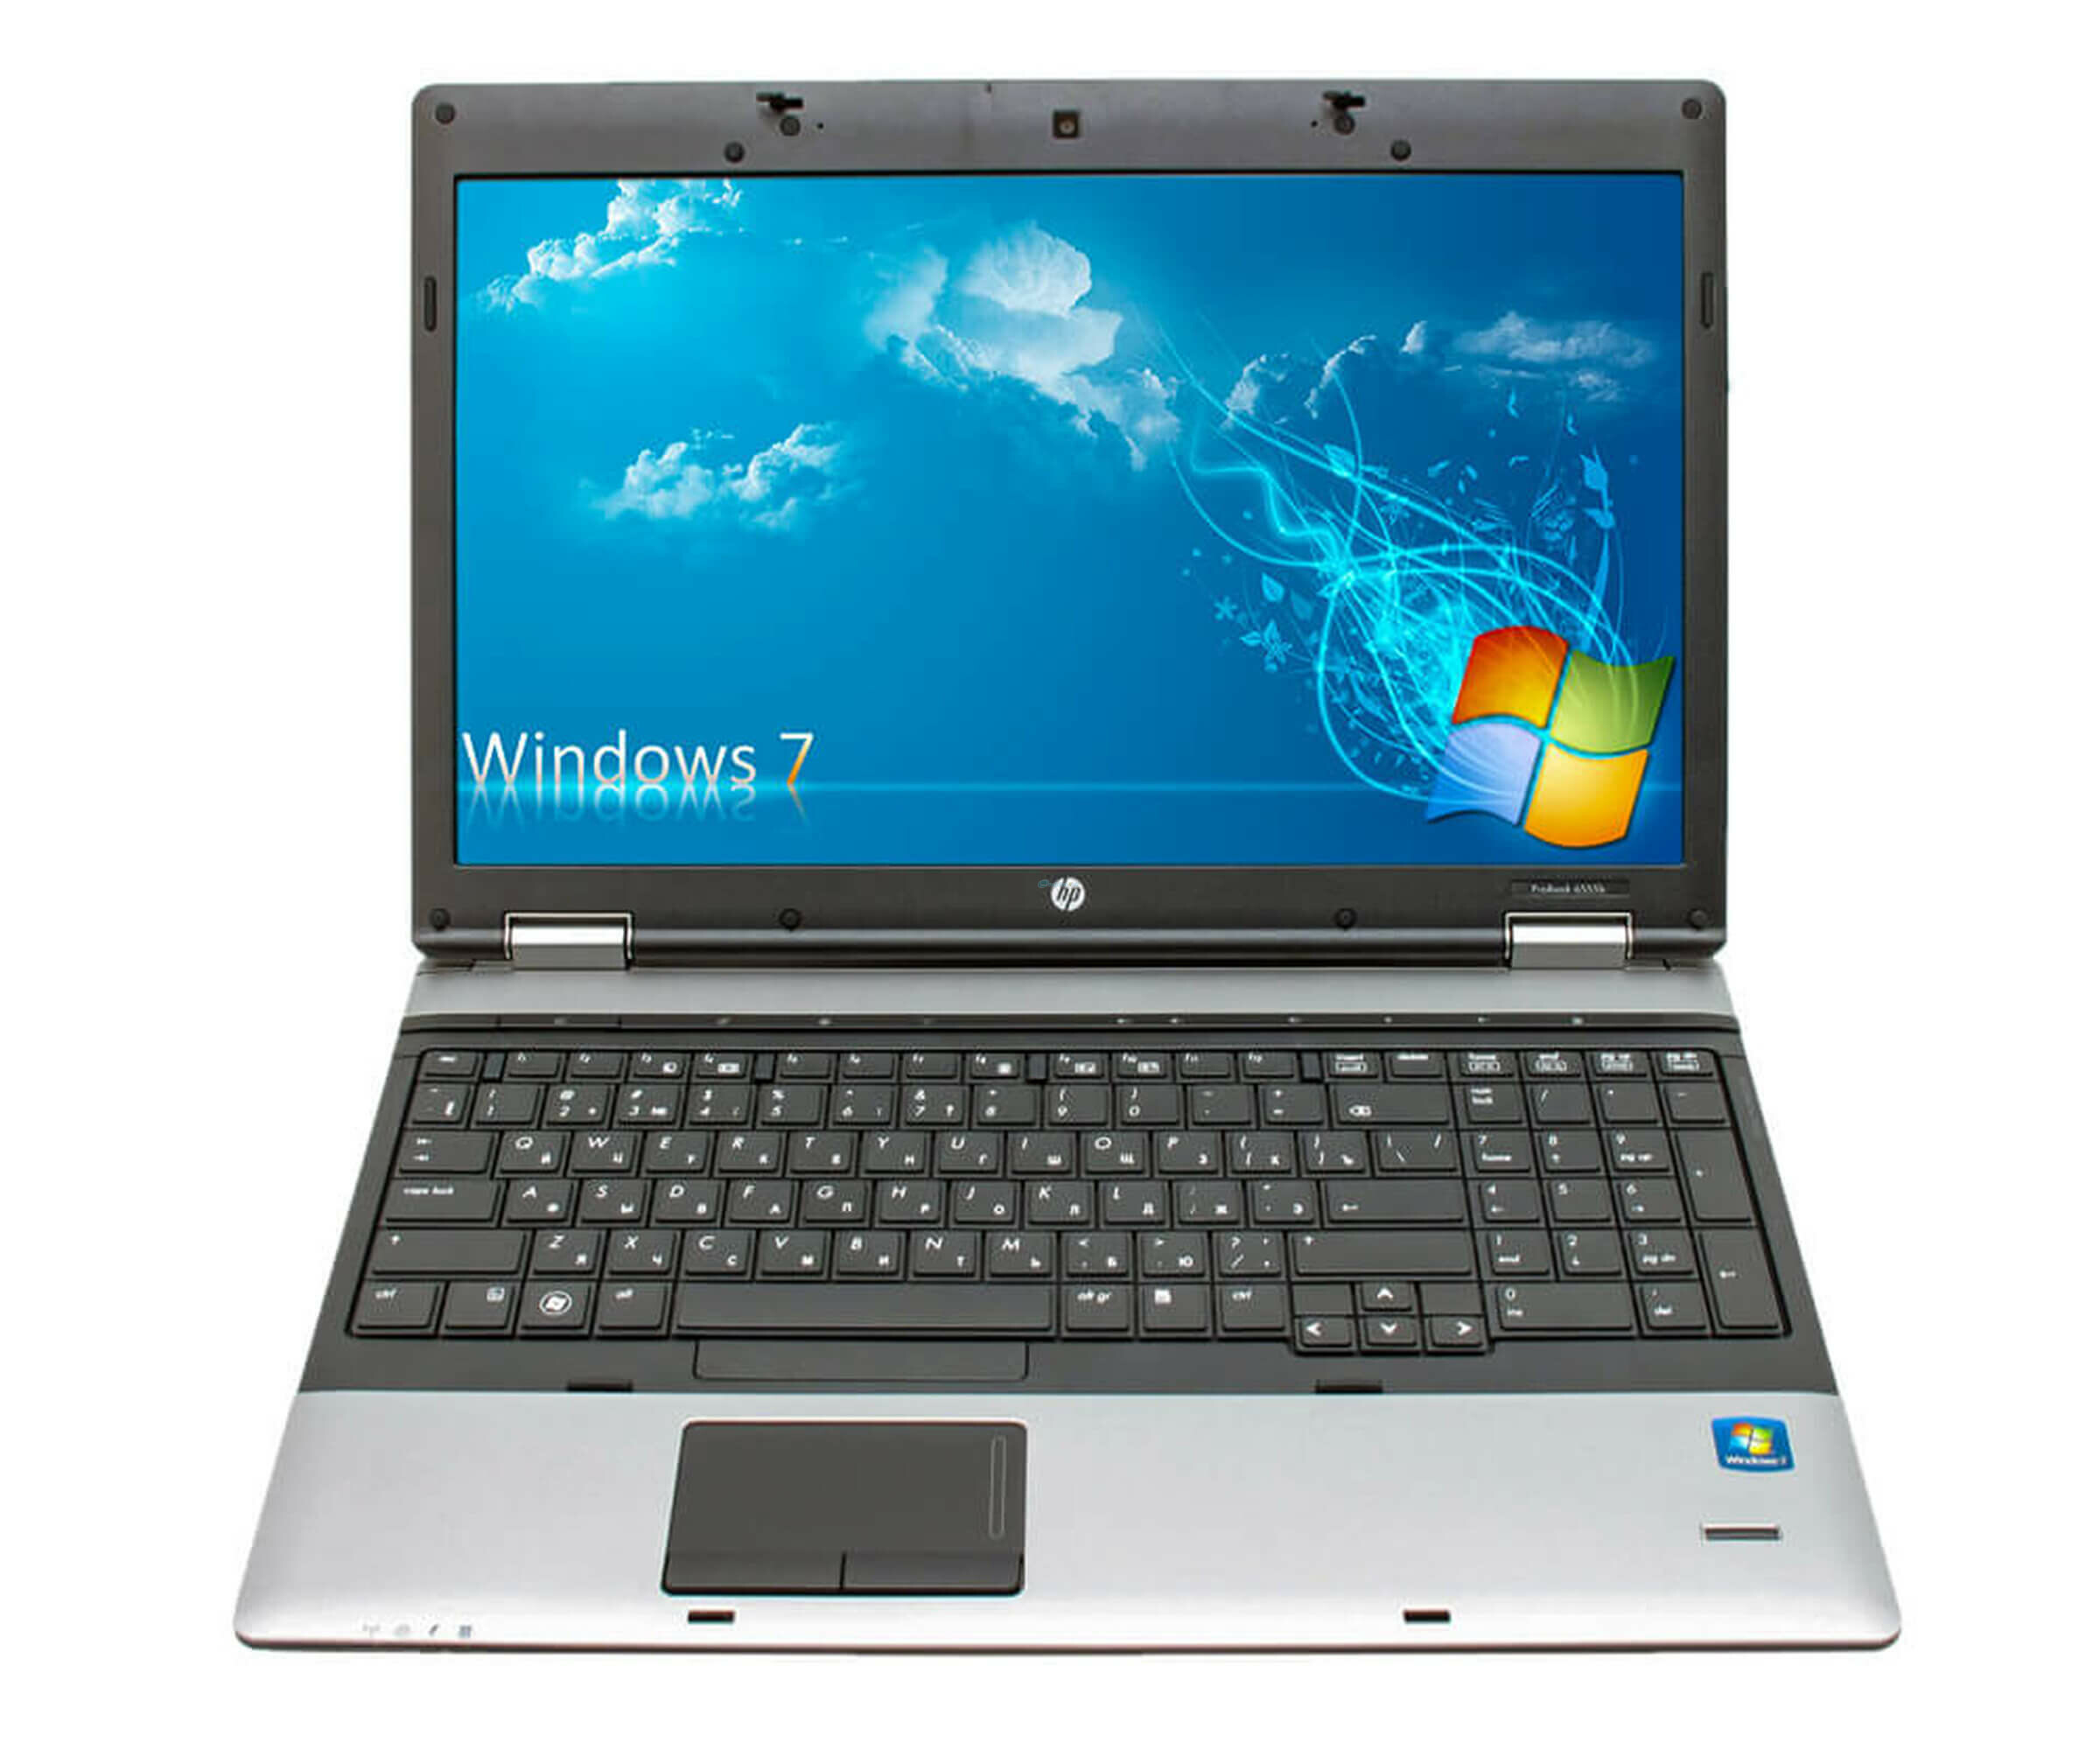 HP ProBook 6555b - AMD Phenom II N620 / 2.8 GHz - 4 GB RAM - 160 GB HDD - DVD-RW - 15.6 - W7